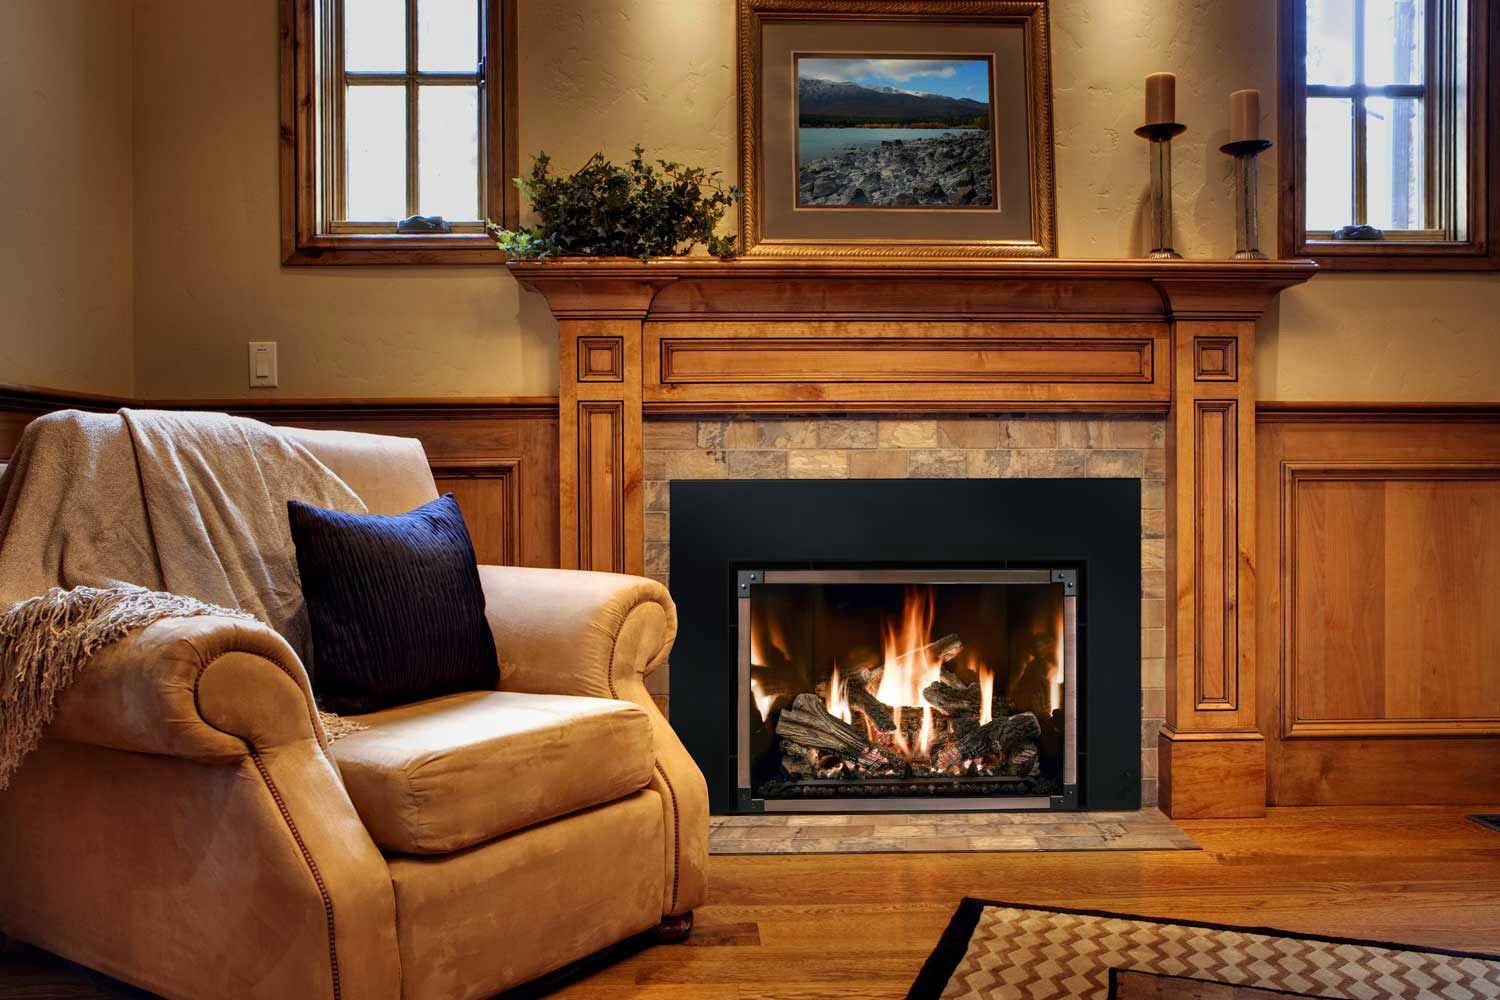 Mendota Hearth Gas Fireplaces And Gas Fireplace Inserts Are